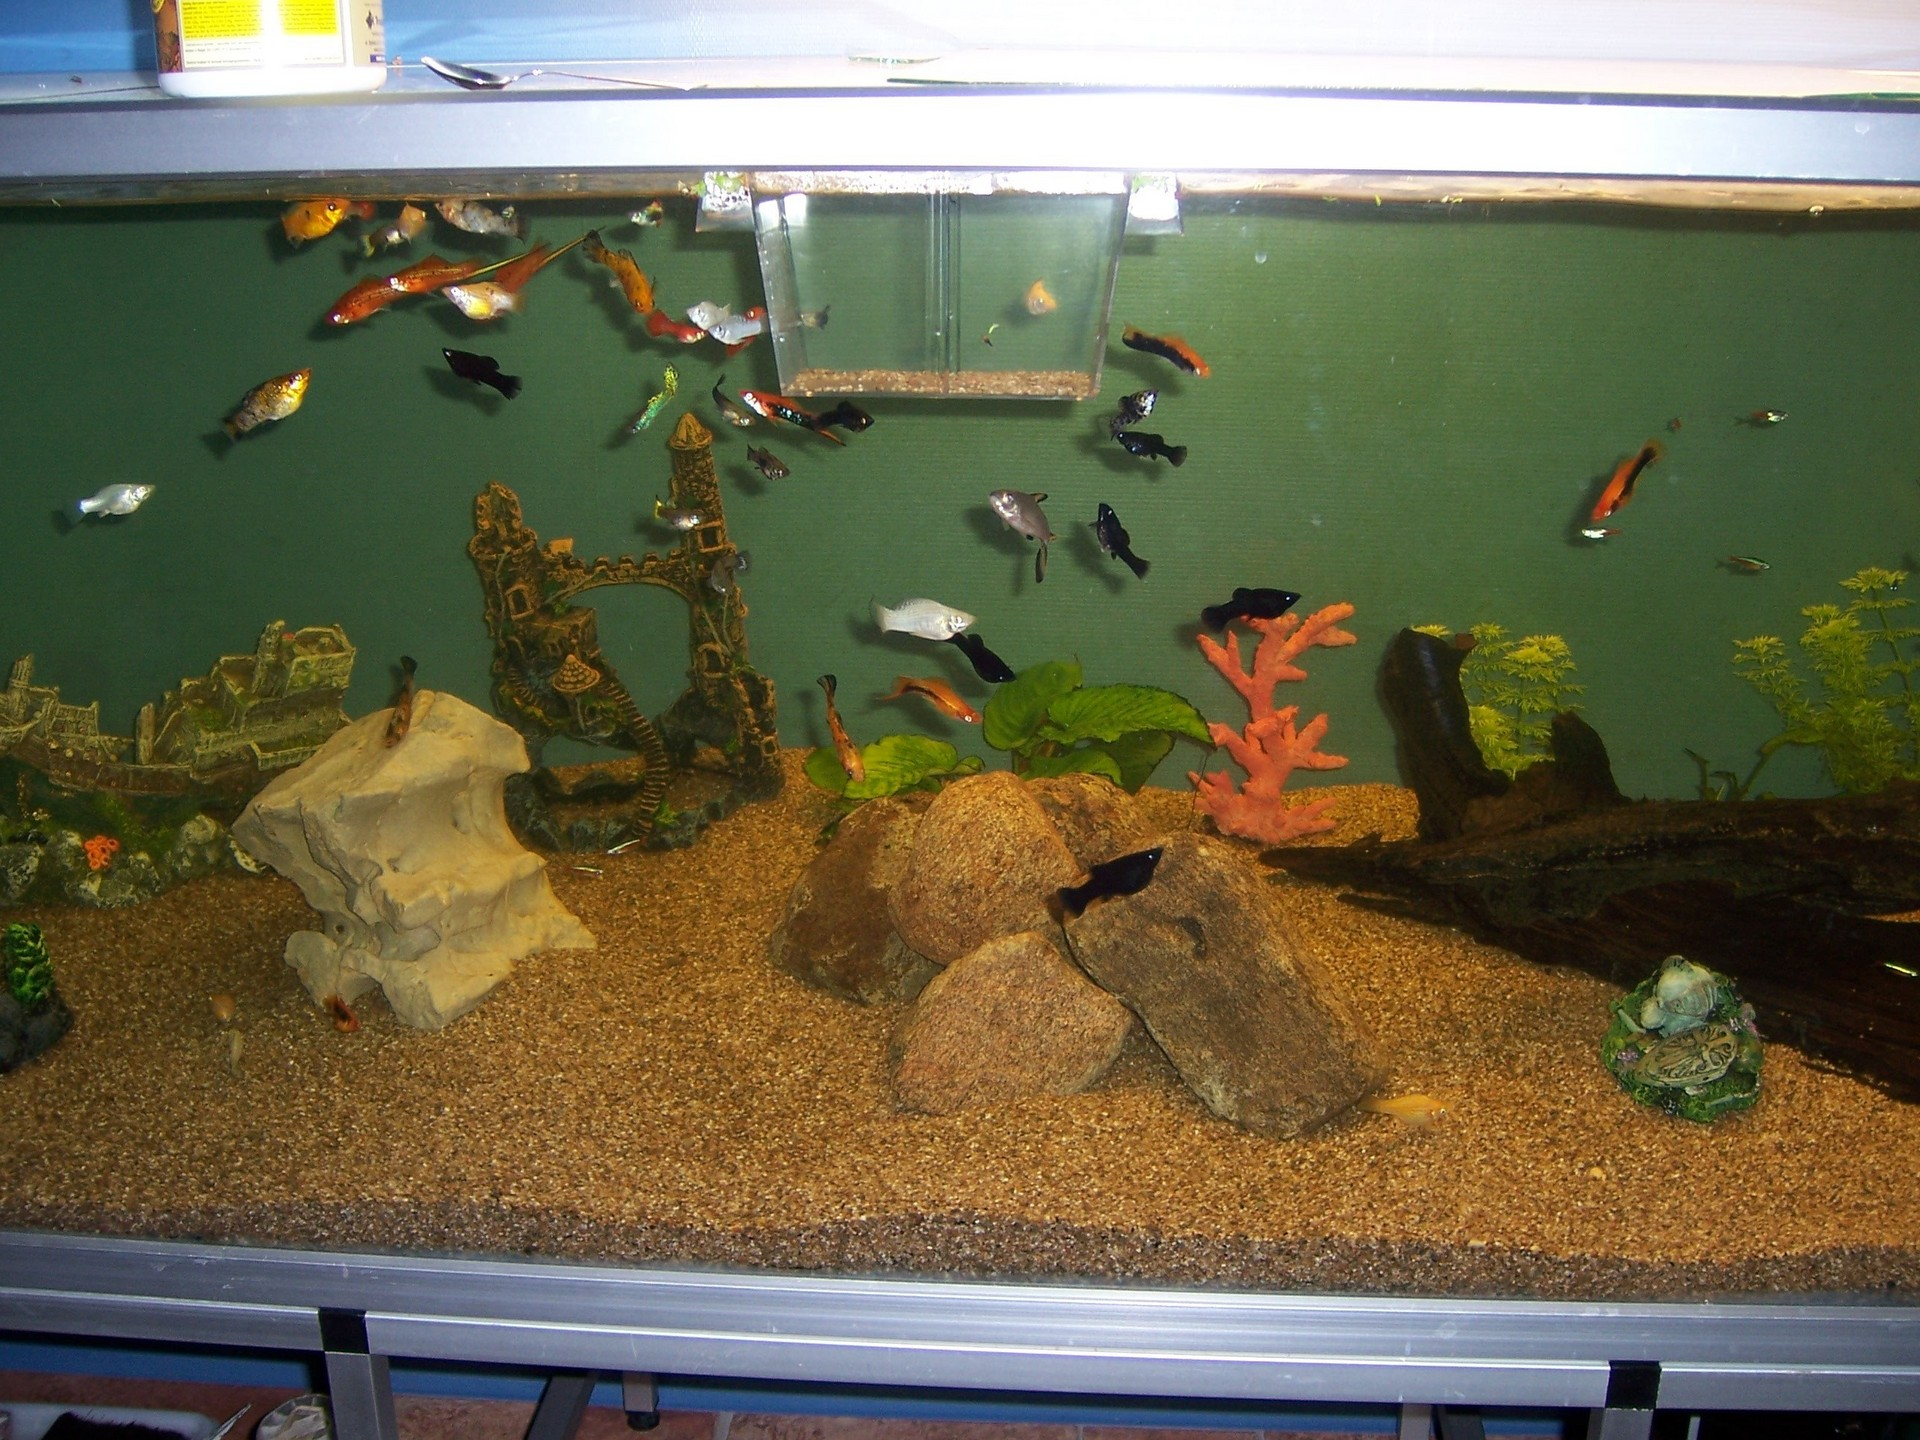 Fish Images In Wall Aquarium Hd Wallpaper And Background Photos